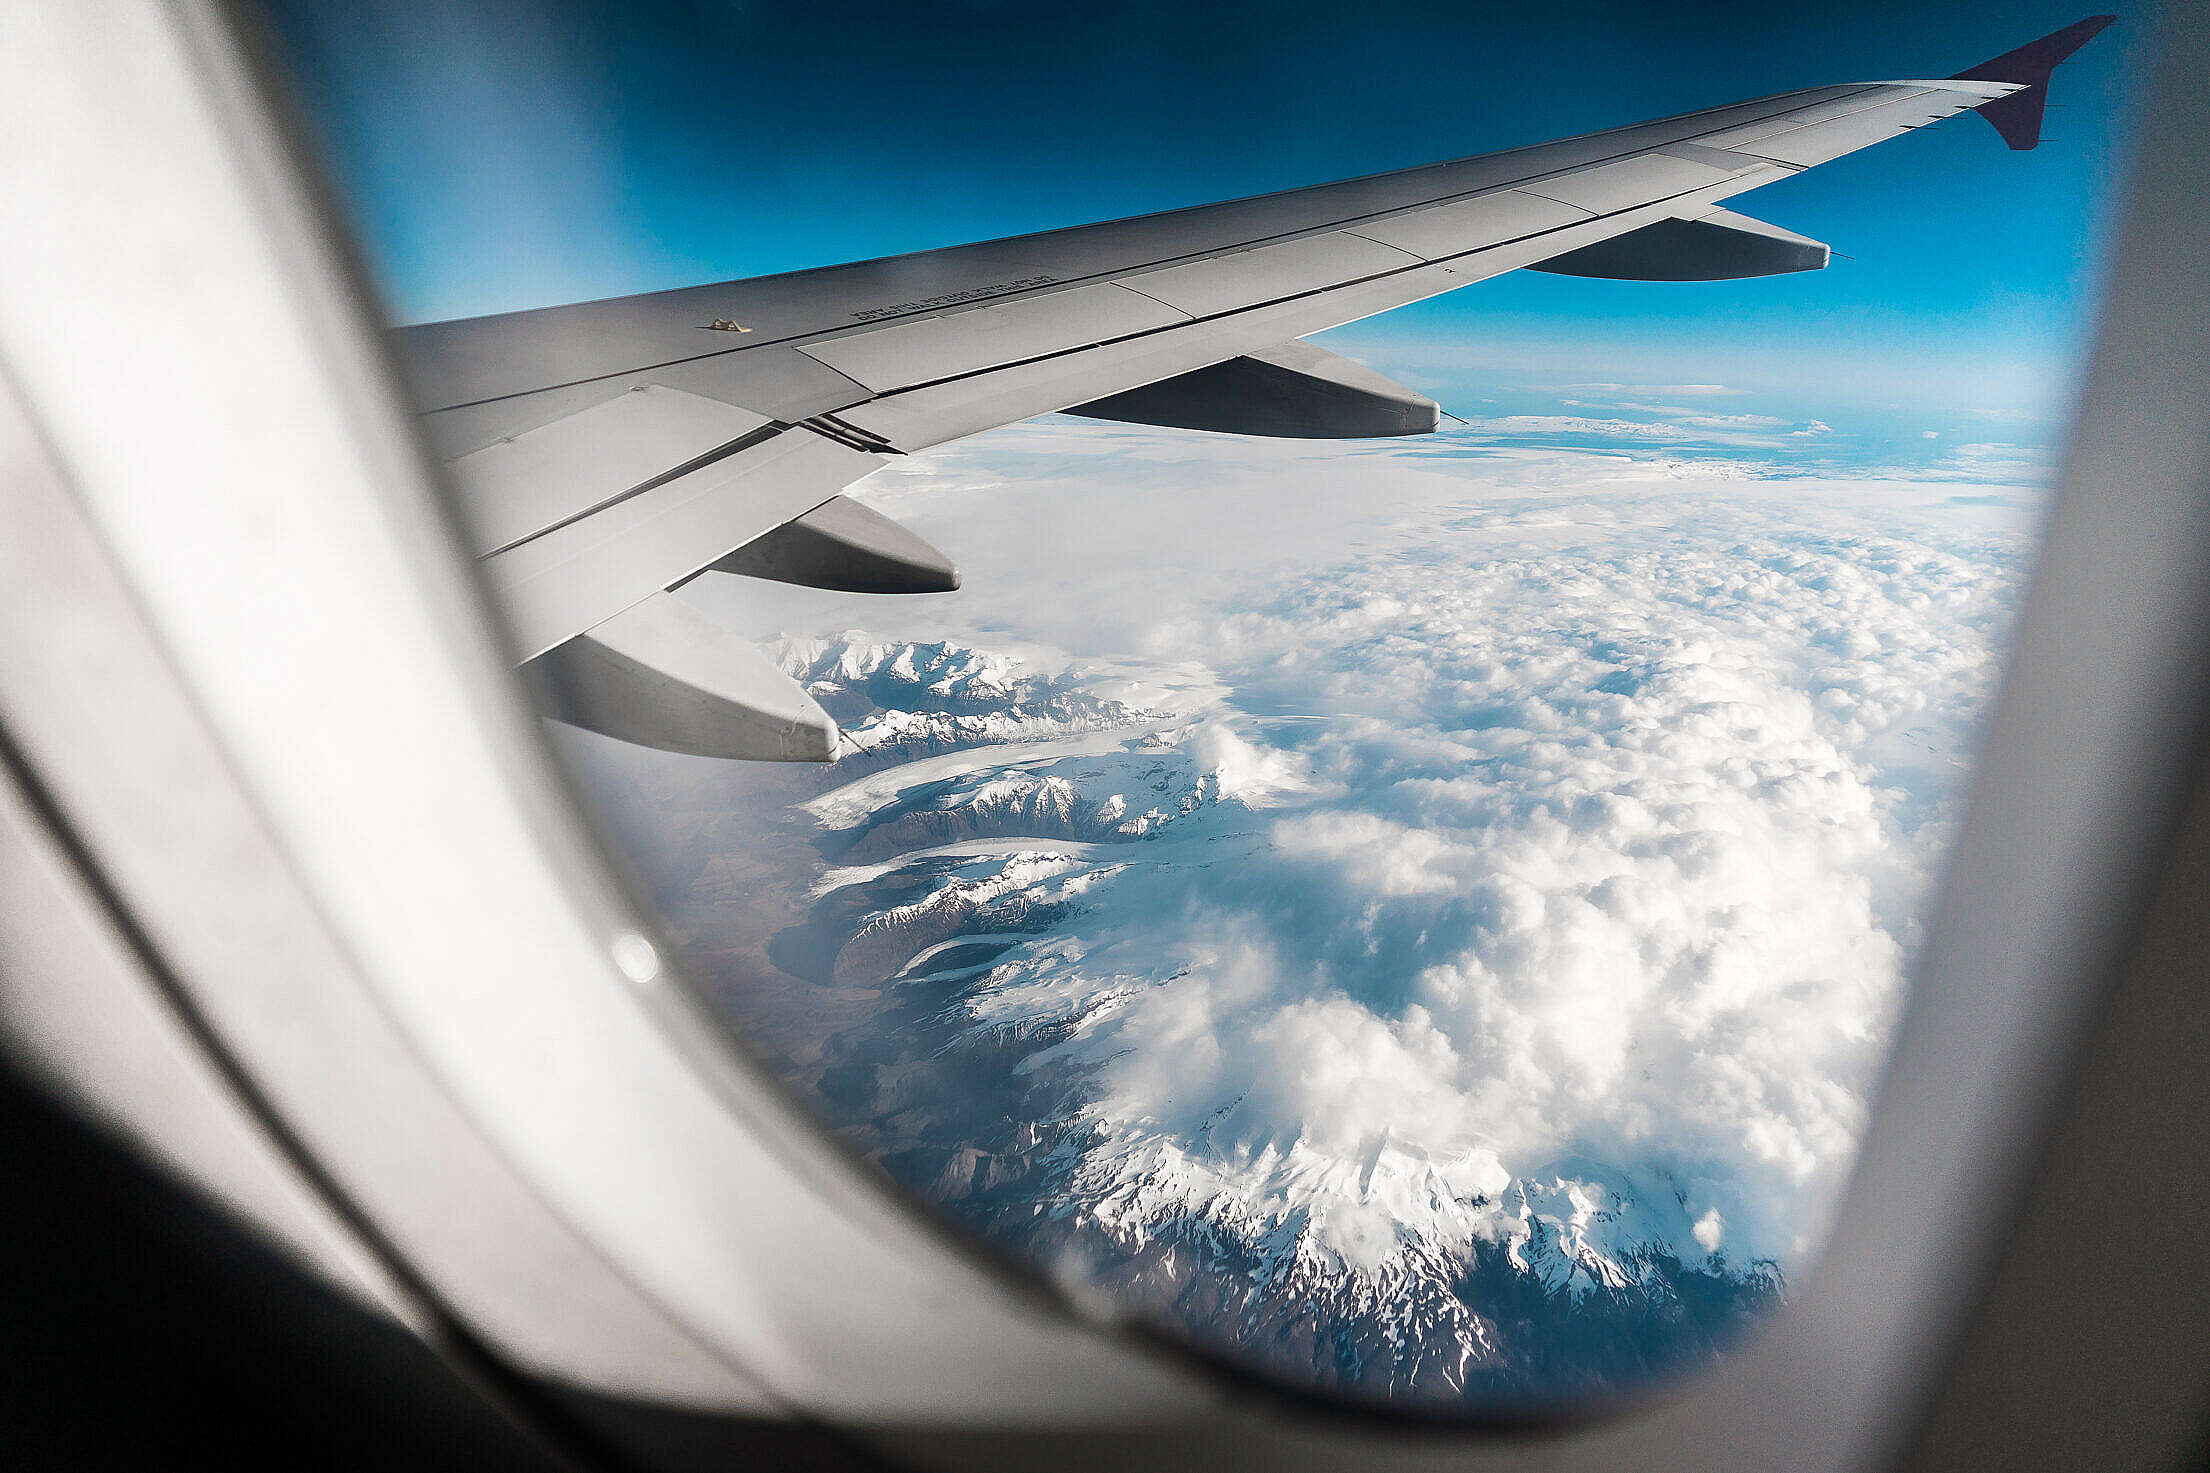 Icelandic Mountains and Glaciers from Airplane Free Stock Photo